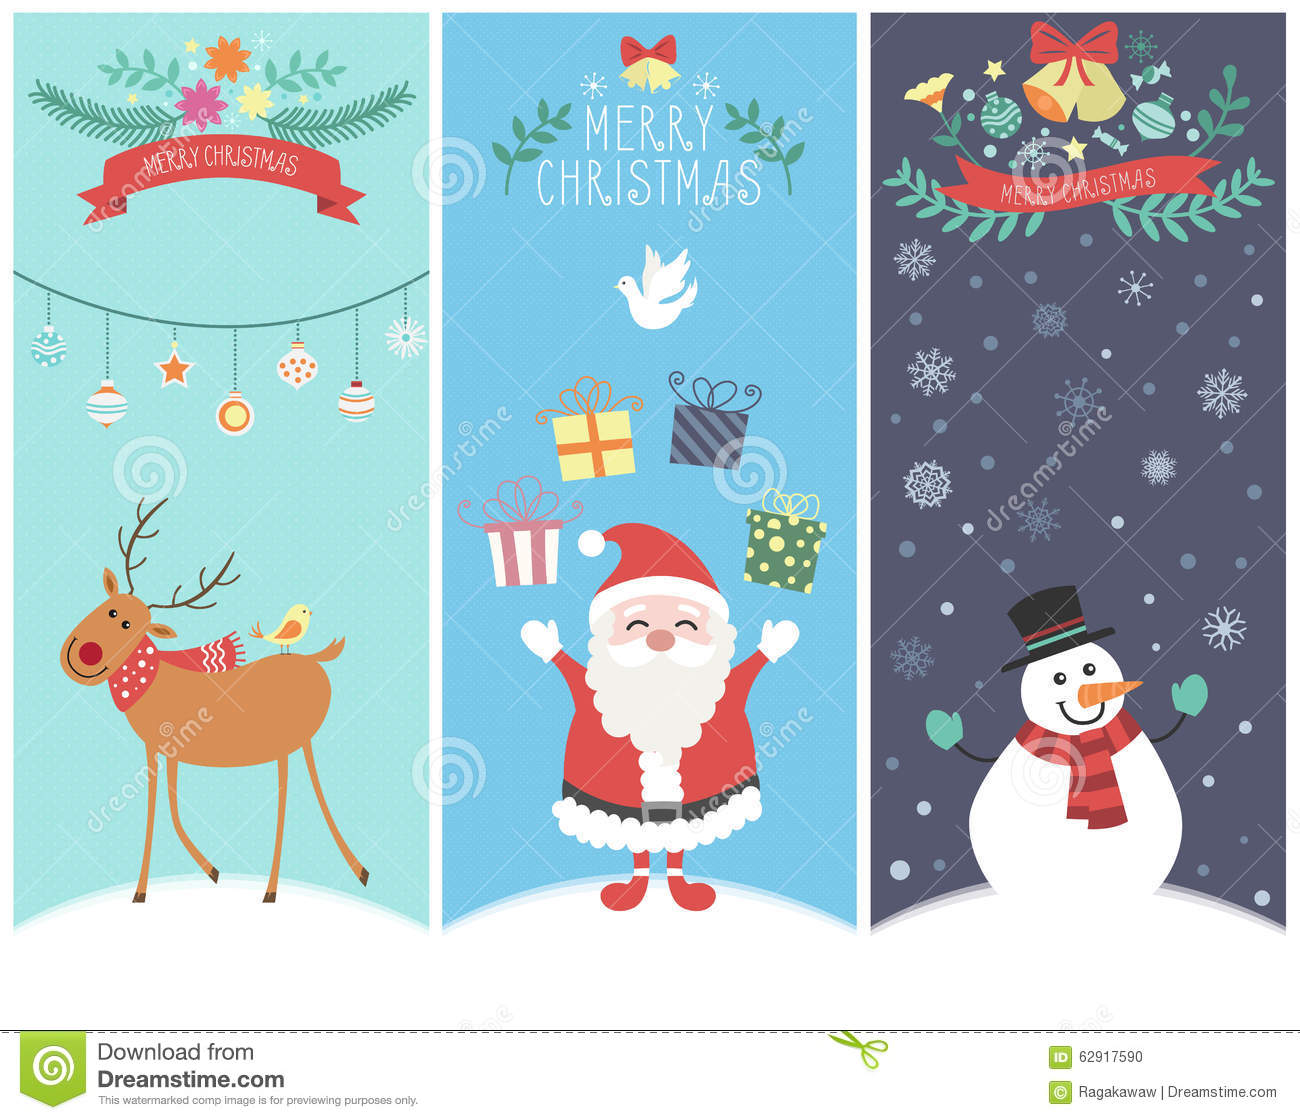 Christmas Graphic.The Cute Christmas Graphic Cartoon Design Stock Vector